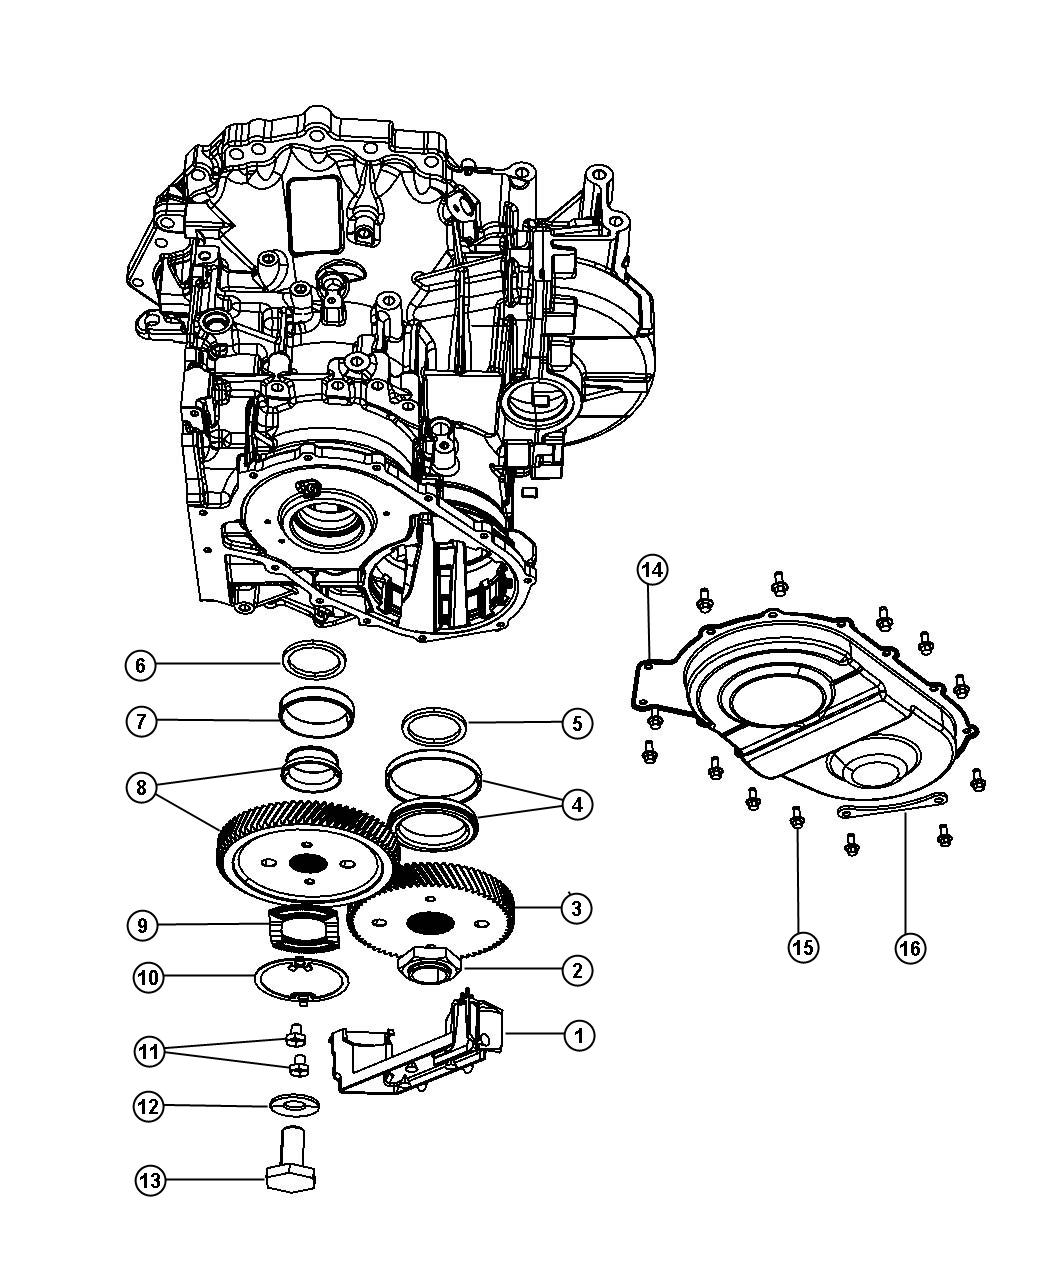 Chrysler Pacifica Output gear. 74 tooth. Top, ratio